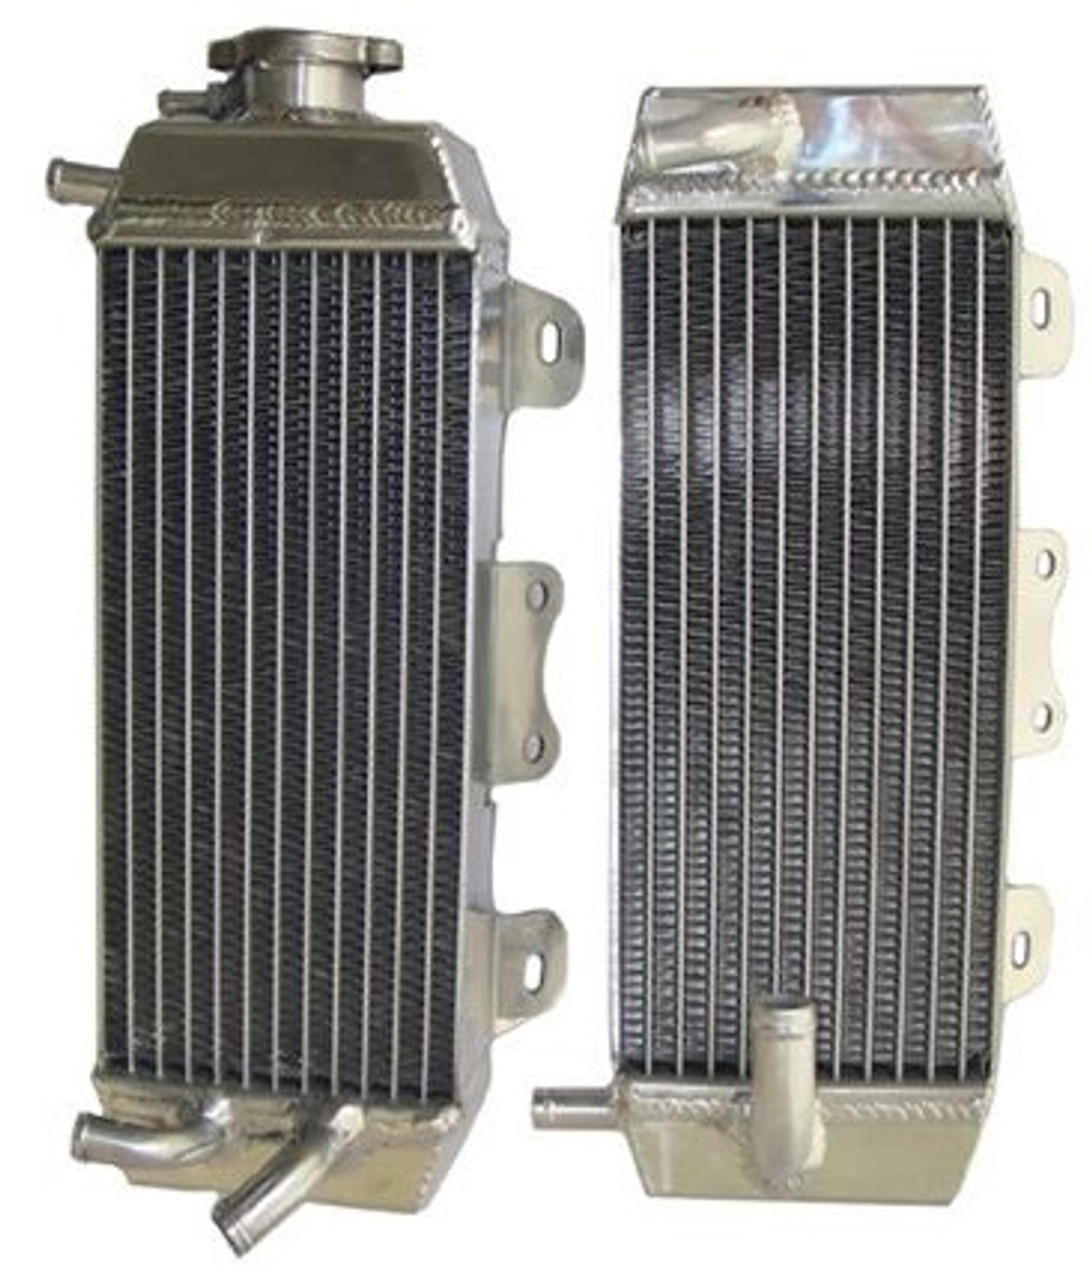 YAMAHA WR450F 2003-2018 RADIATOR SETS PSYCHIC PARTS